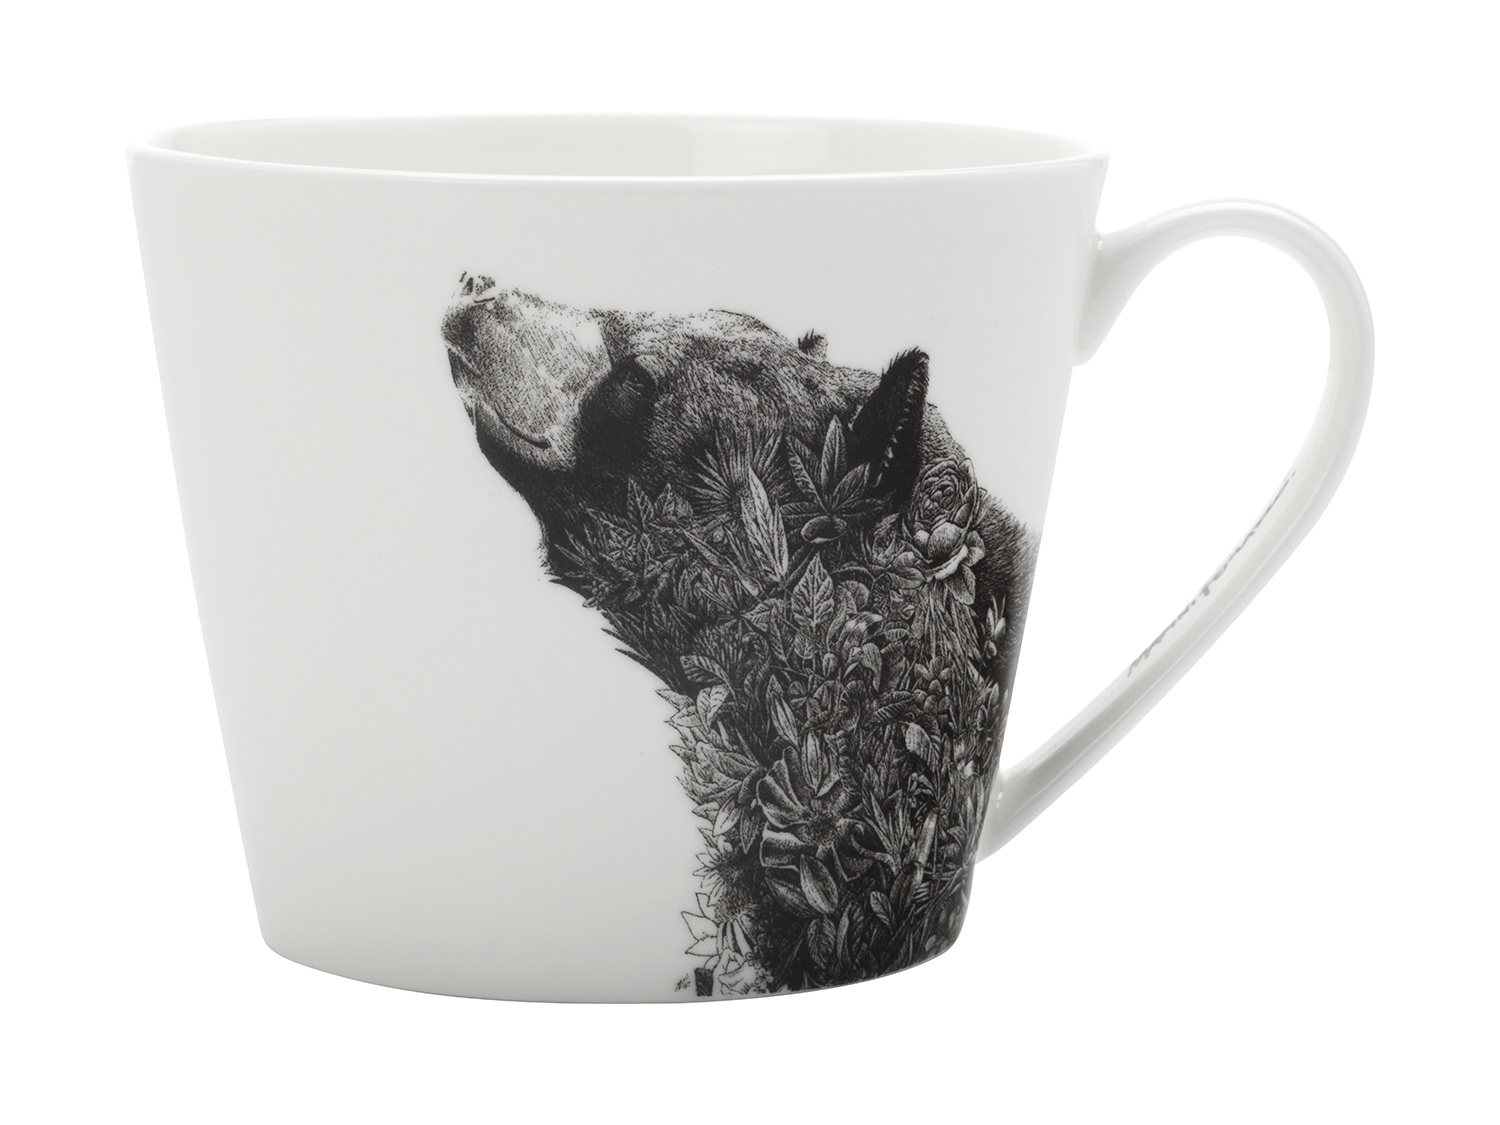 Maxwell & Williams Marini Ferlazzo Black Bear 450Ml Mug